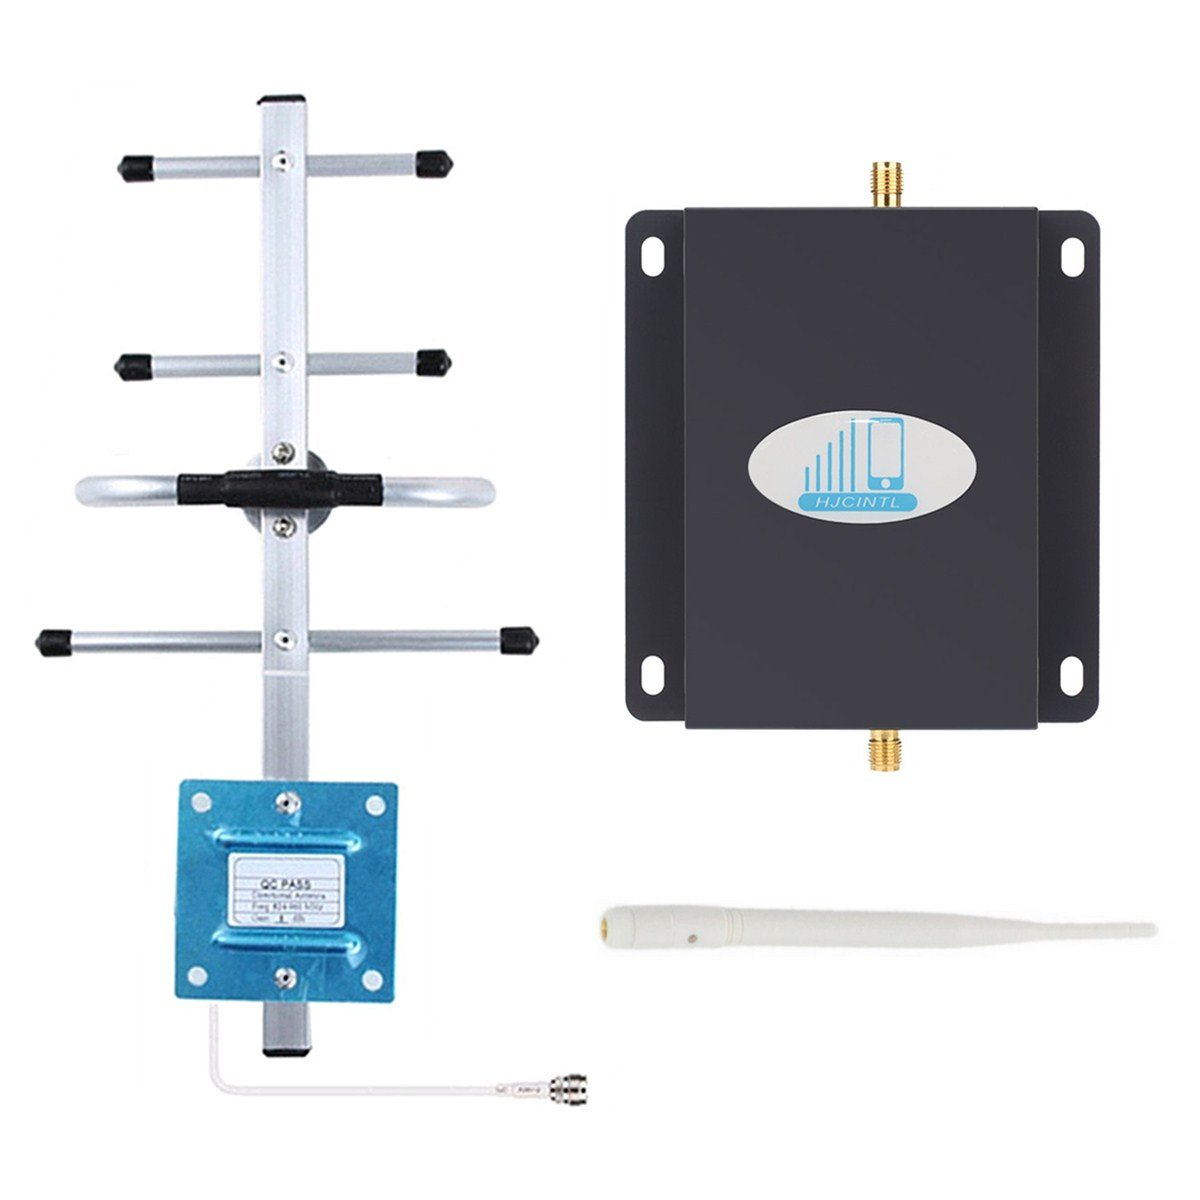 Cell Phone Signal Booster 4G Lte Verizon Cell signal Booster HJCINTL High Gain 65dB Band13 700MHz Home Mobile Phone Signal Booster Amplifier with Yagi/Whip